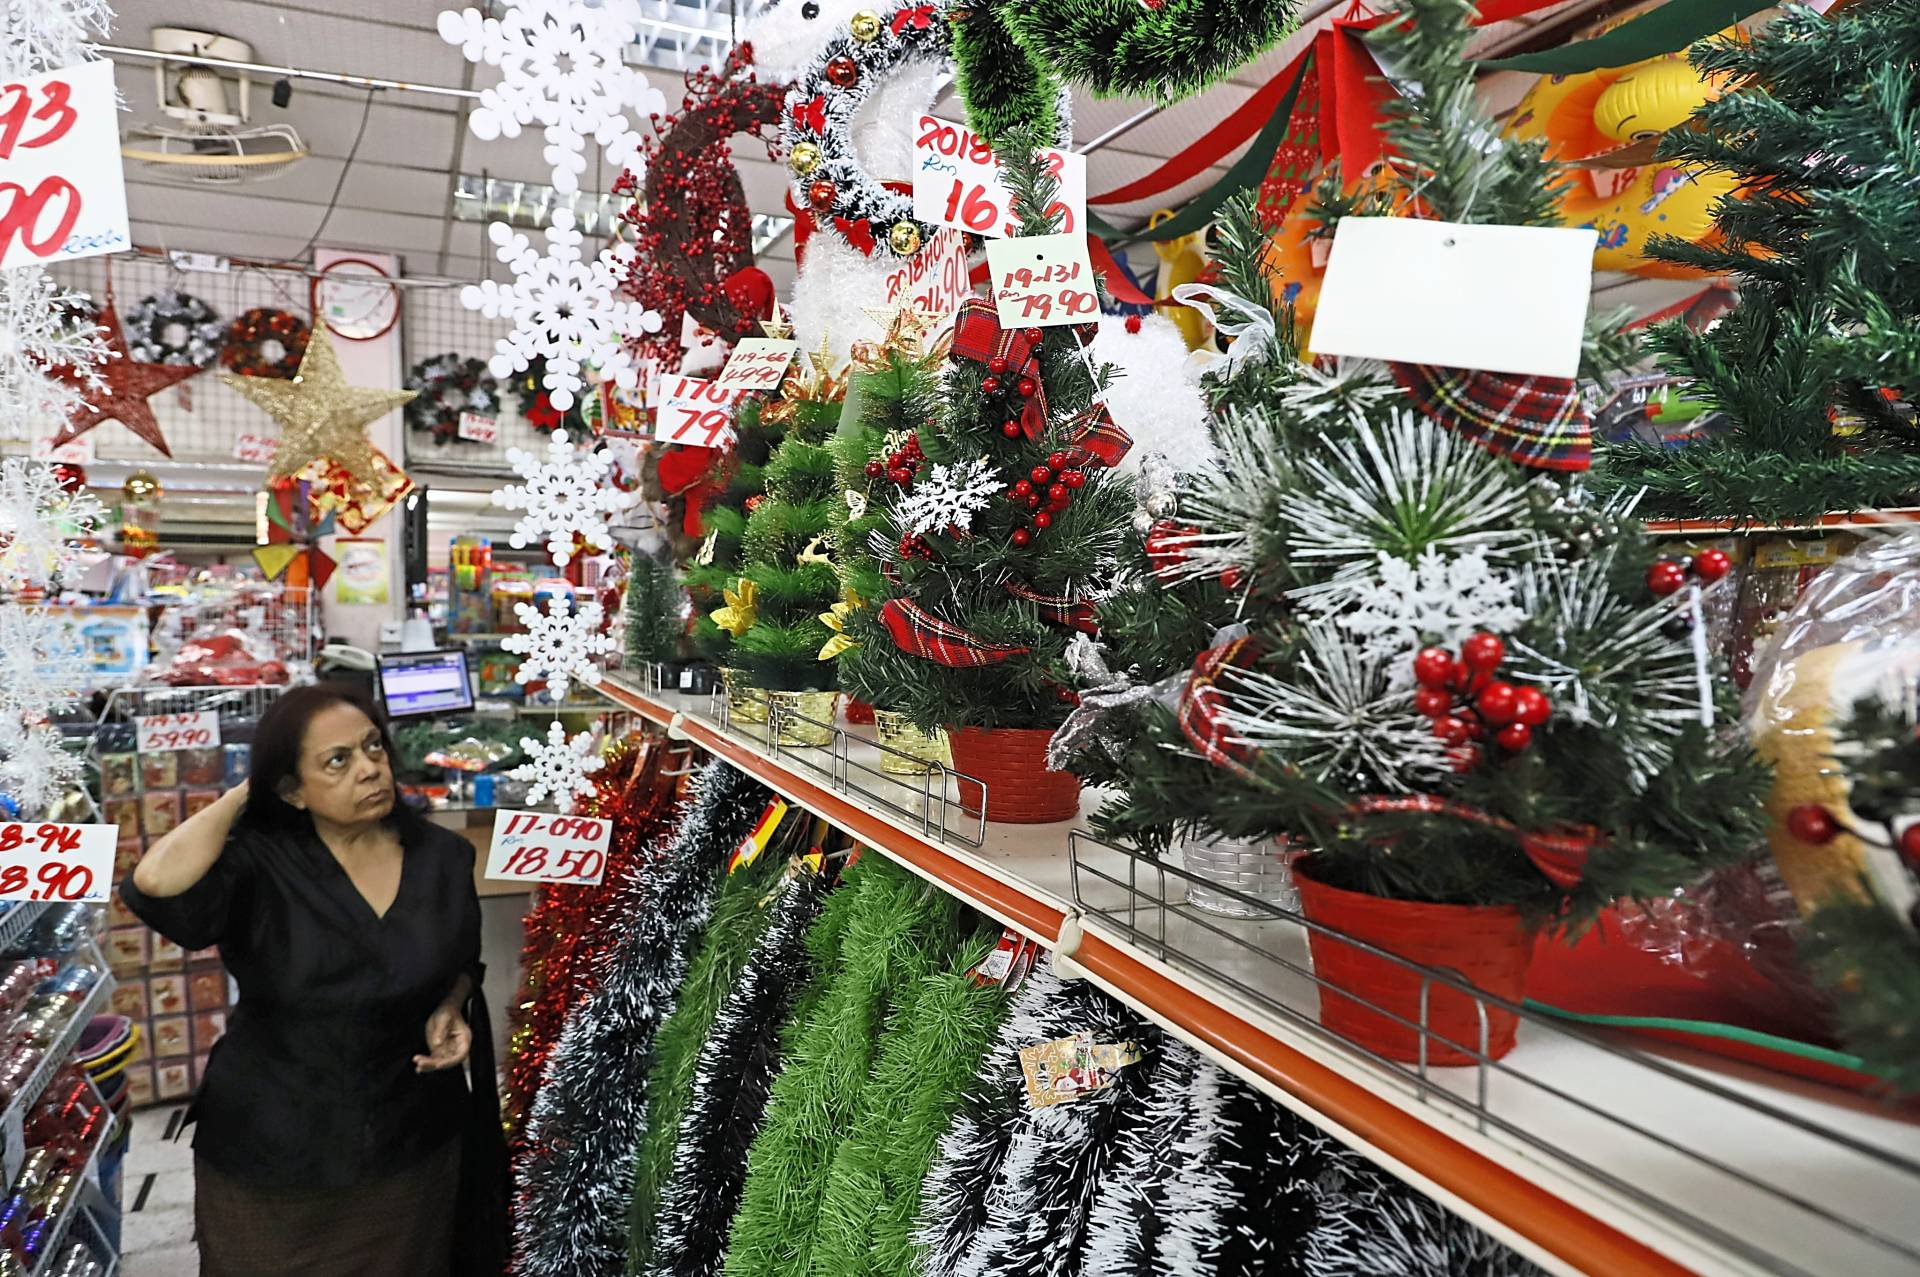 A shopper is spoilt for choice as she inspects the numerous Christmas trees on the shelf.